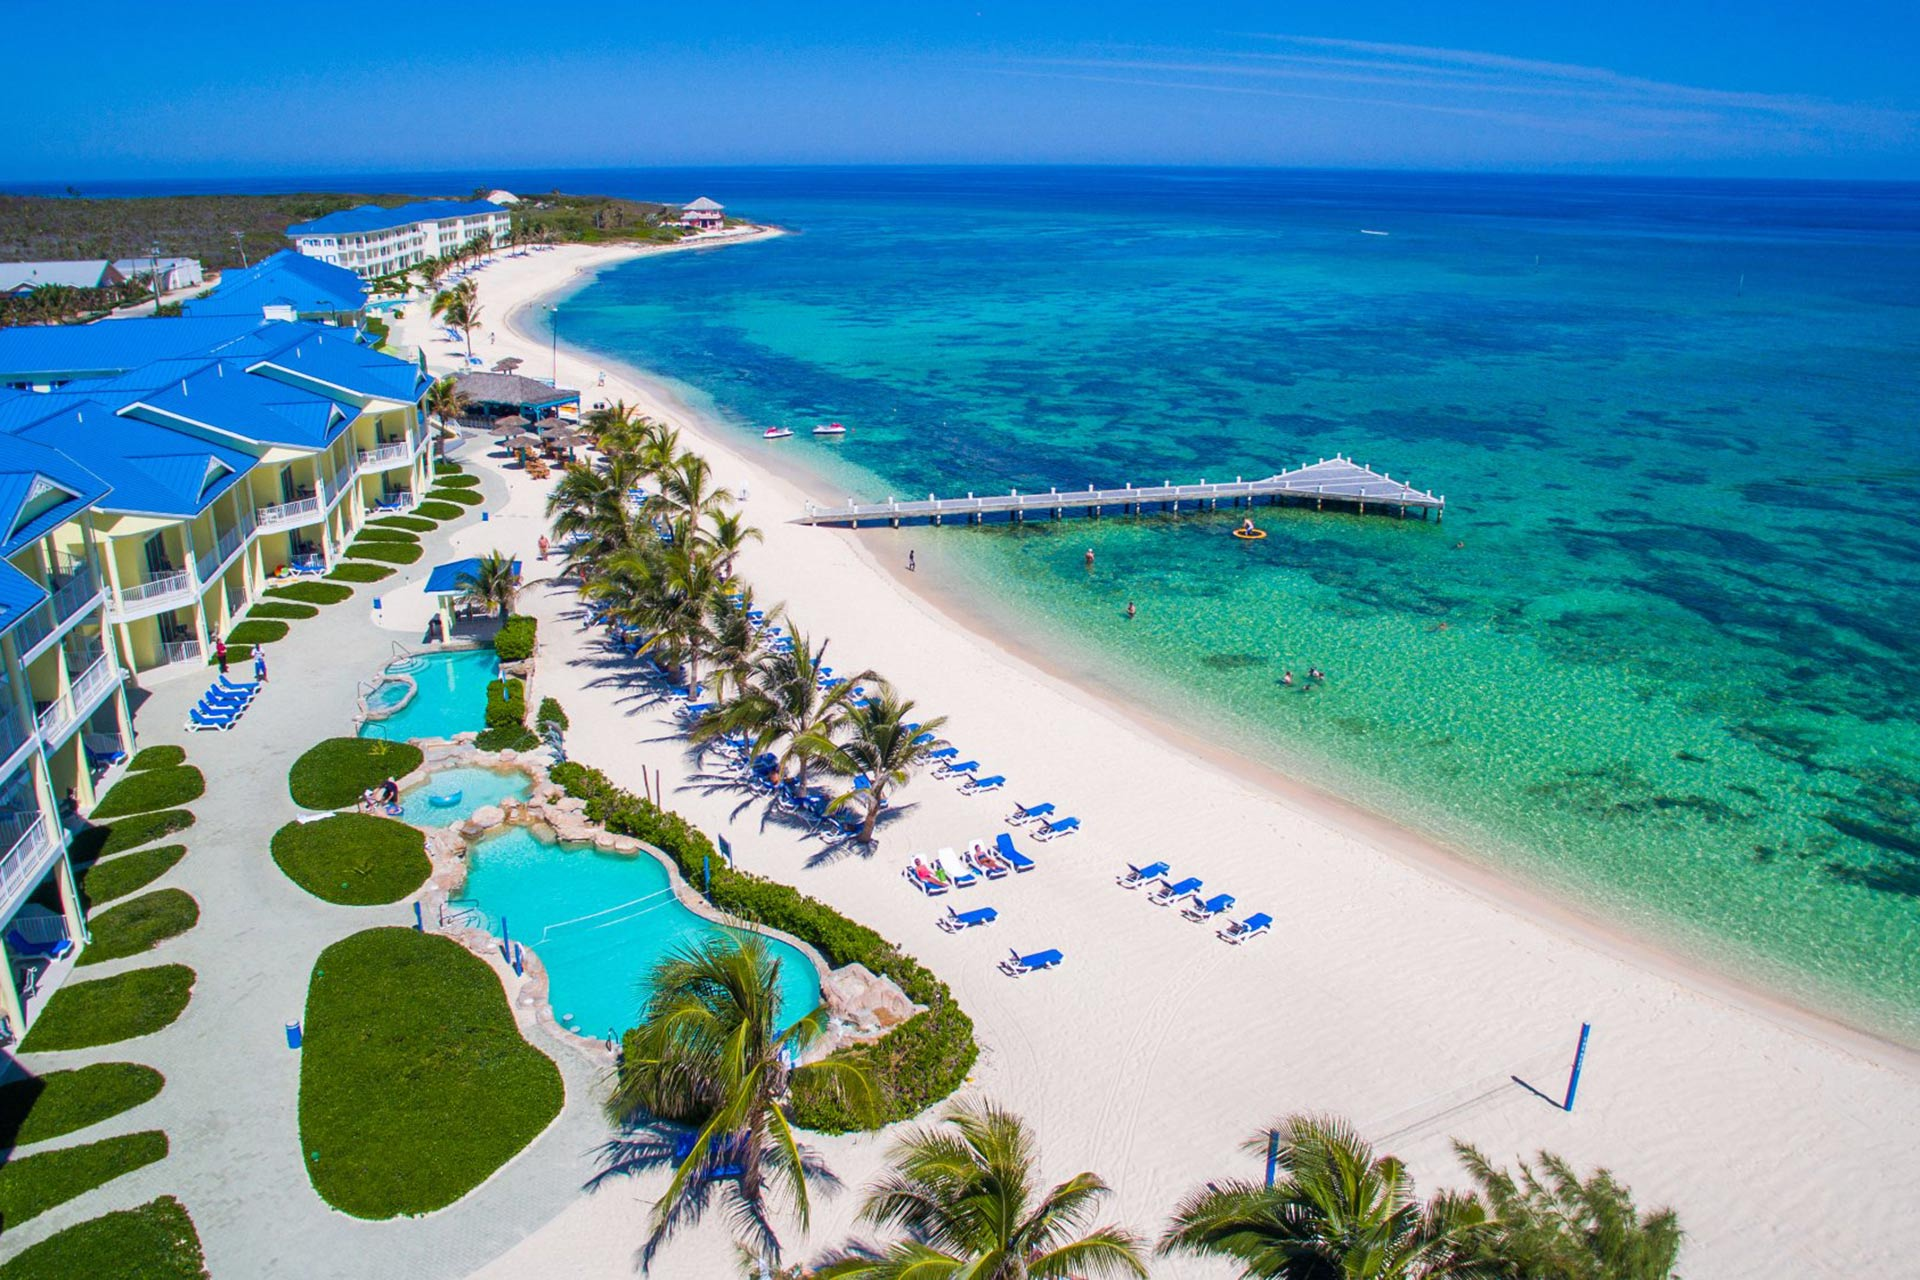 Wyndham Reef Resort in Cayman Islands; Courtesy of Wyndham Reef Resort